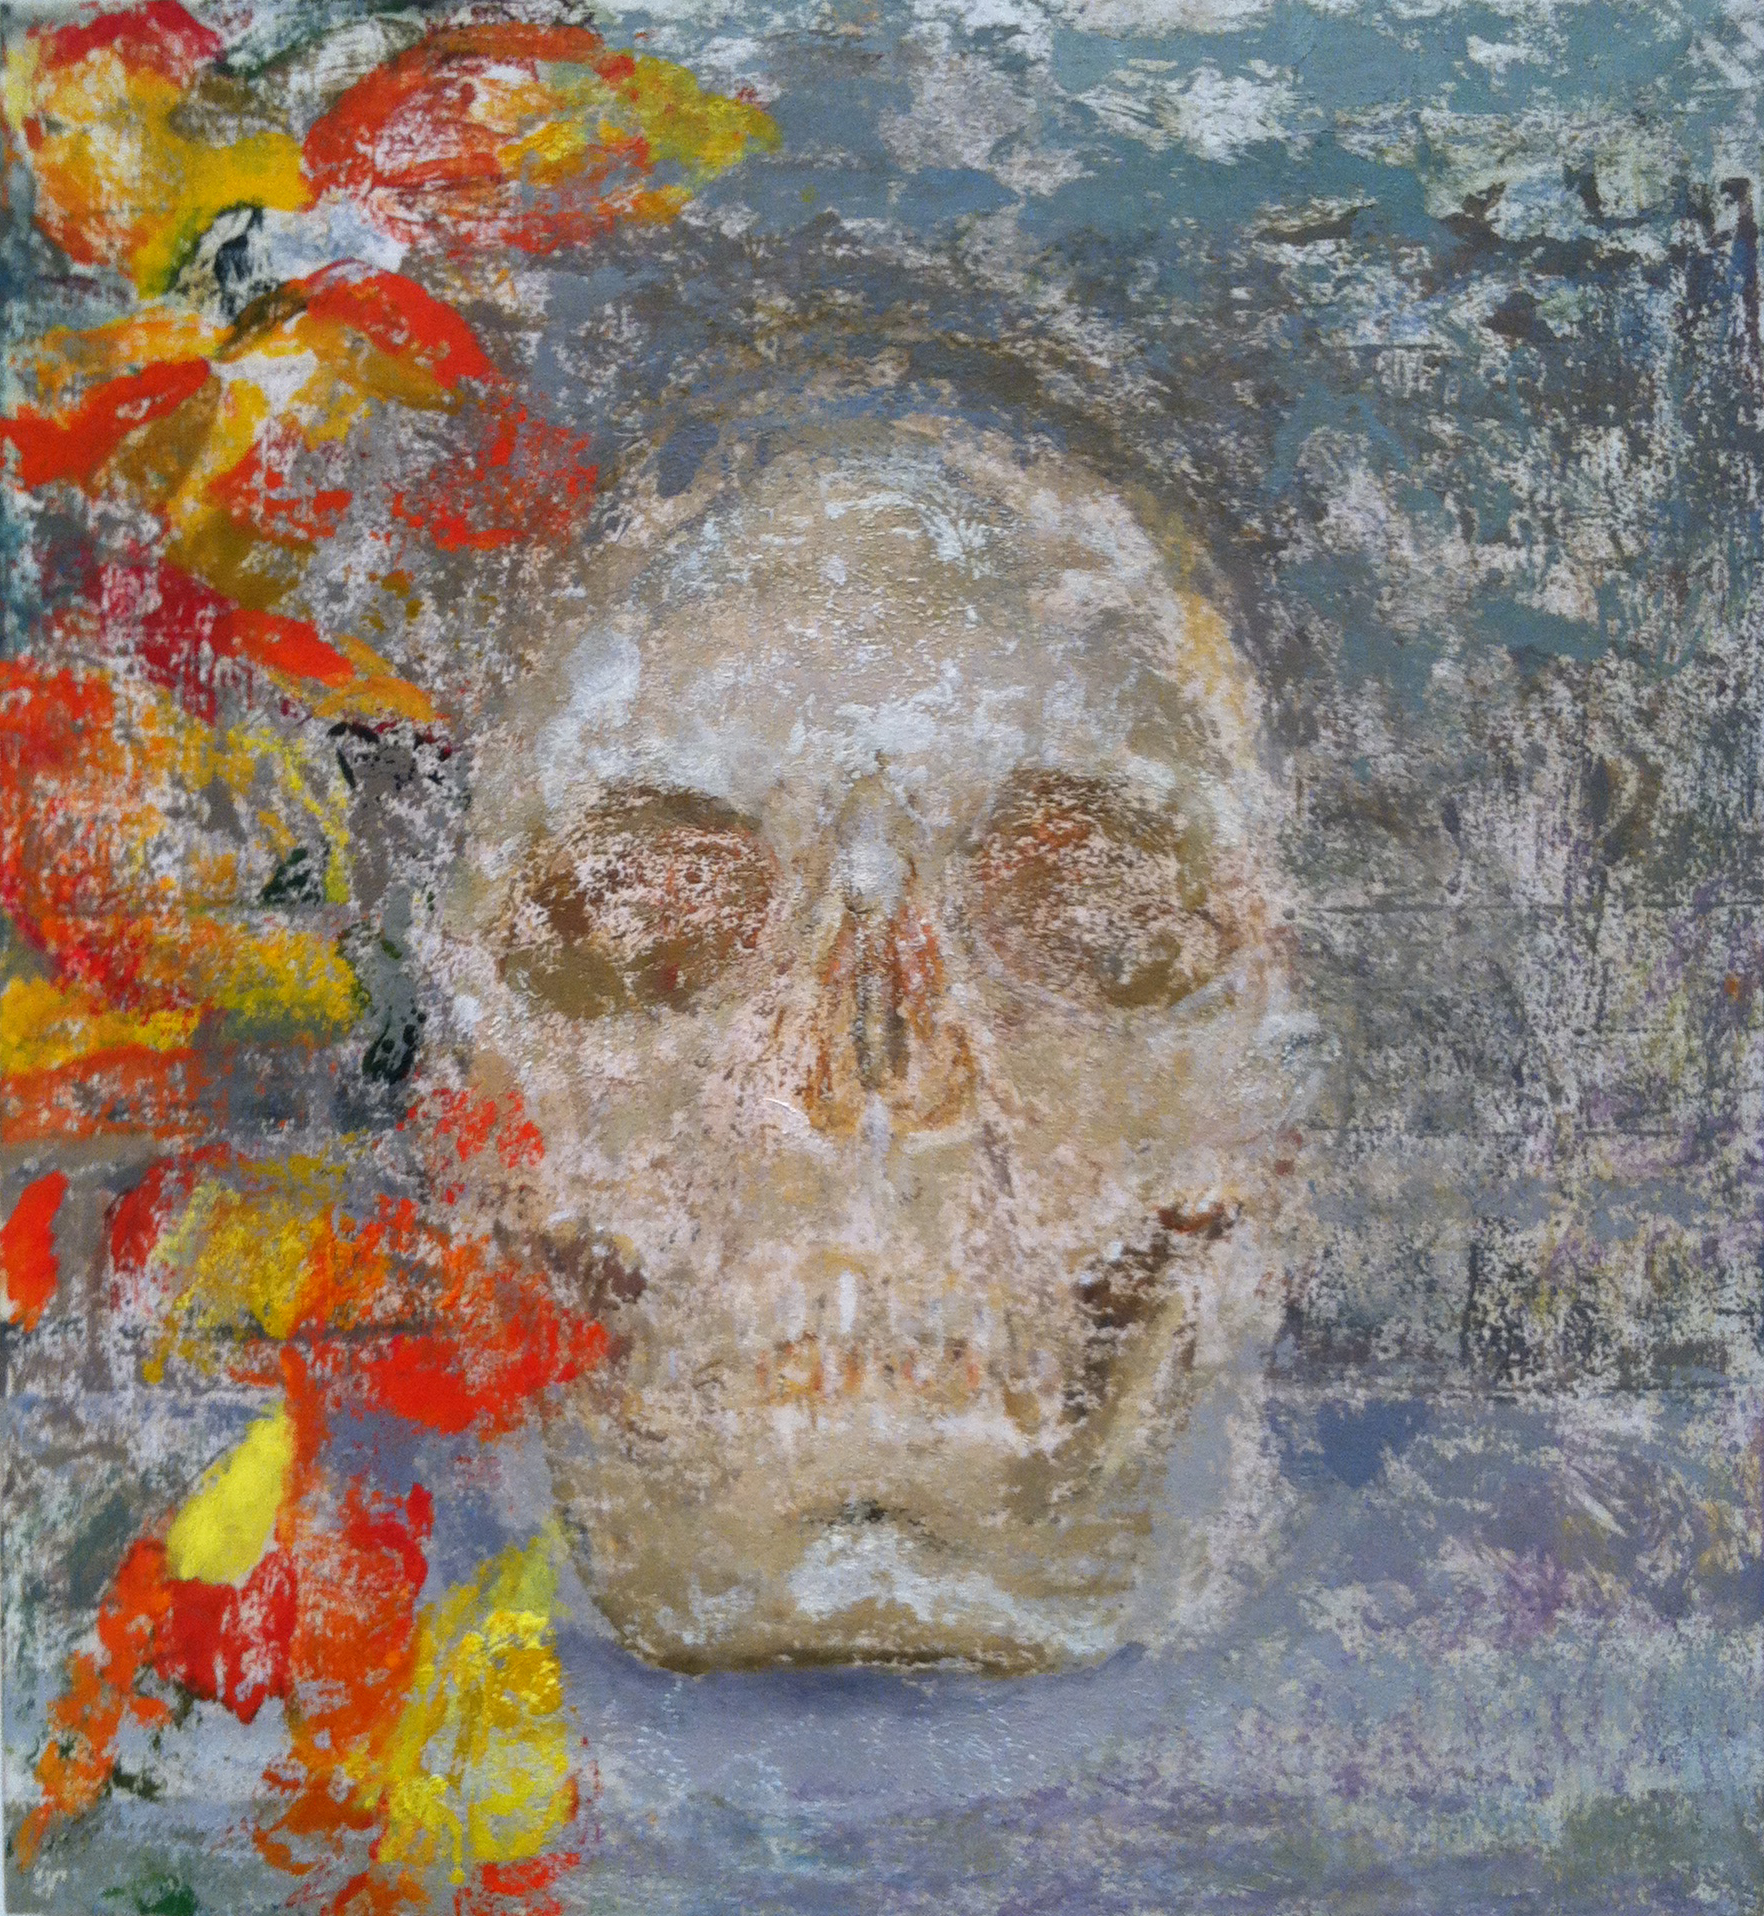 Flowery Skull , 2012 oil on panel, 13 x 12 inches